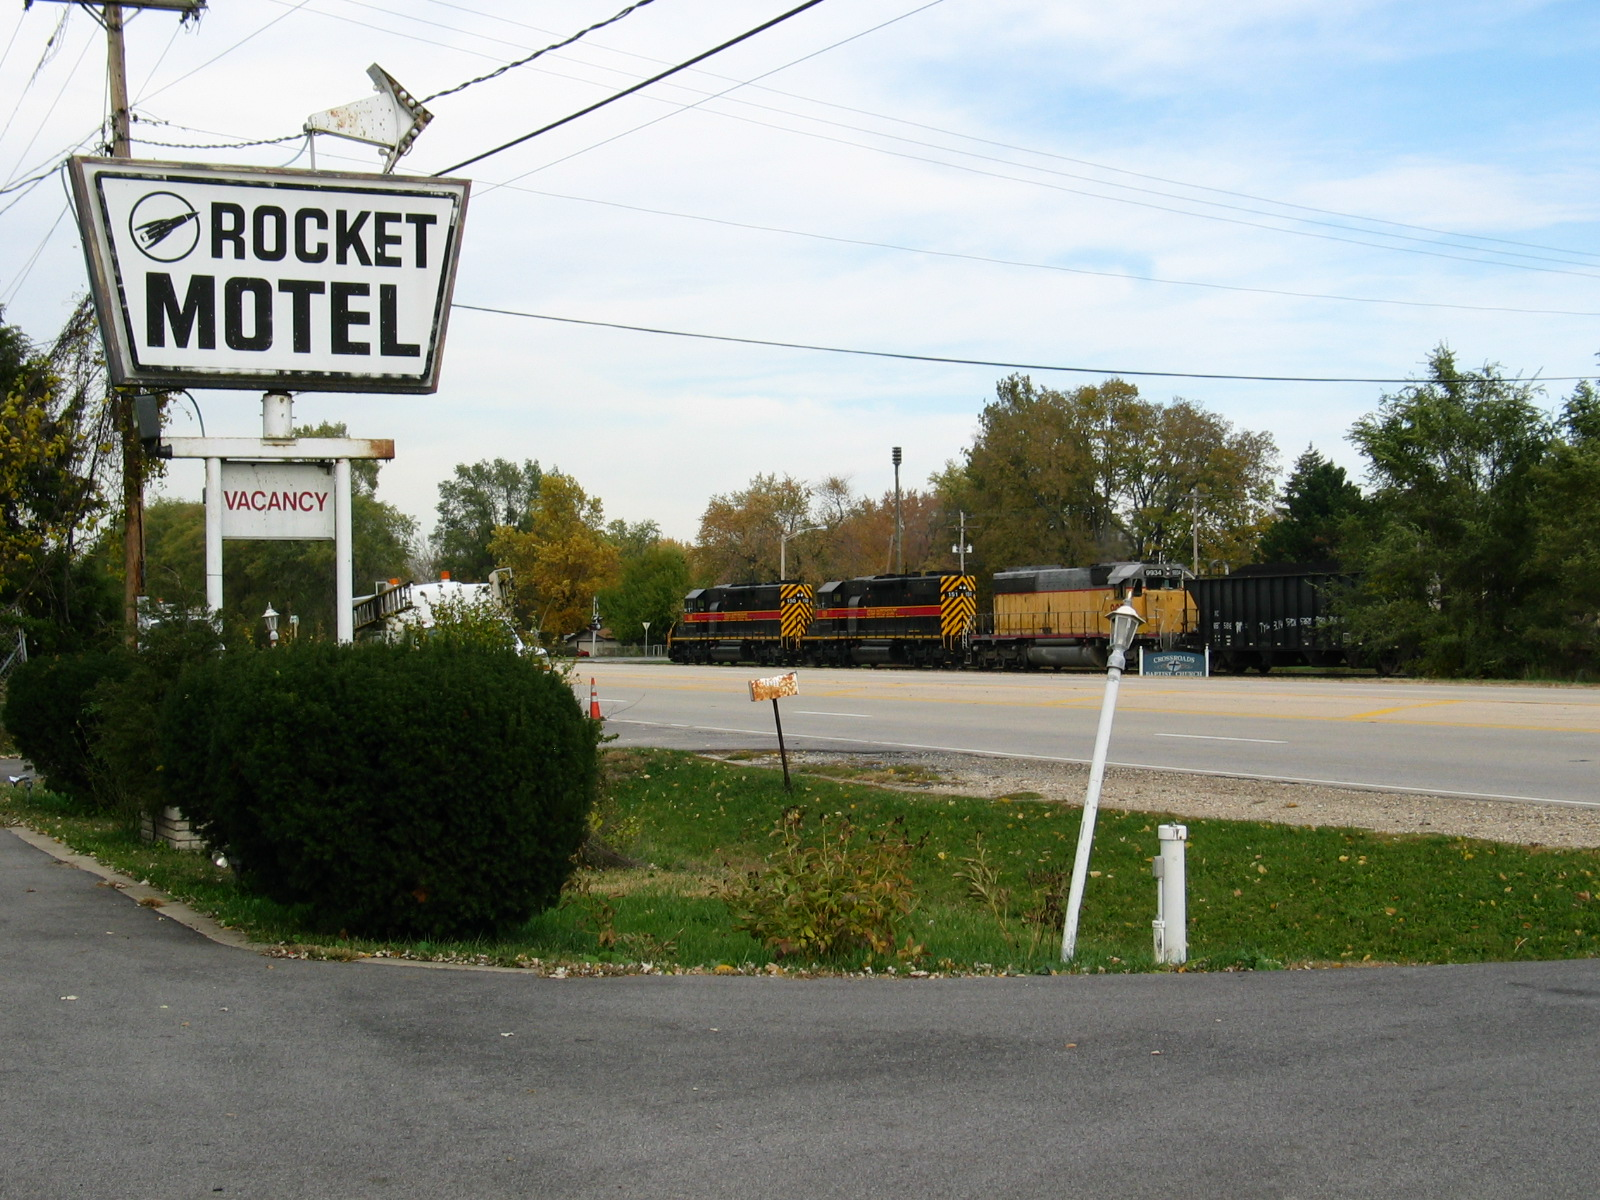 Rocketing past the Rocket Motel, Mossville, Nov. 3, 2005.